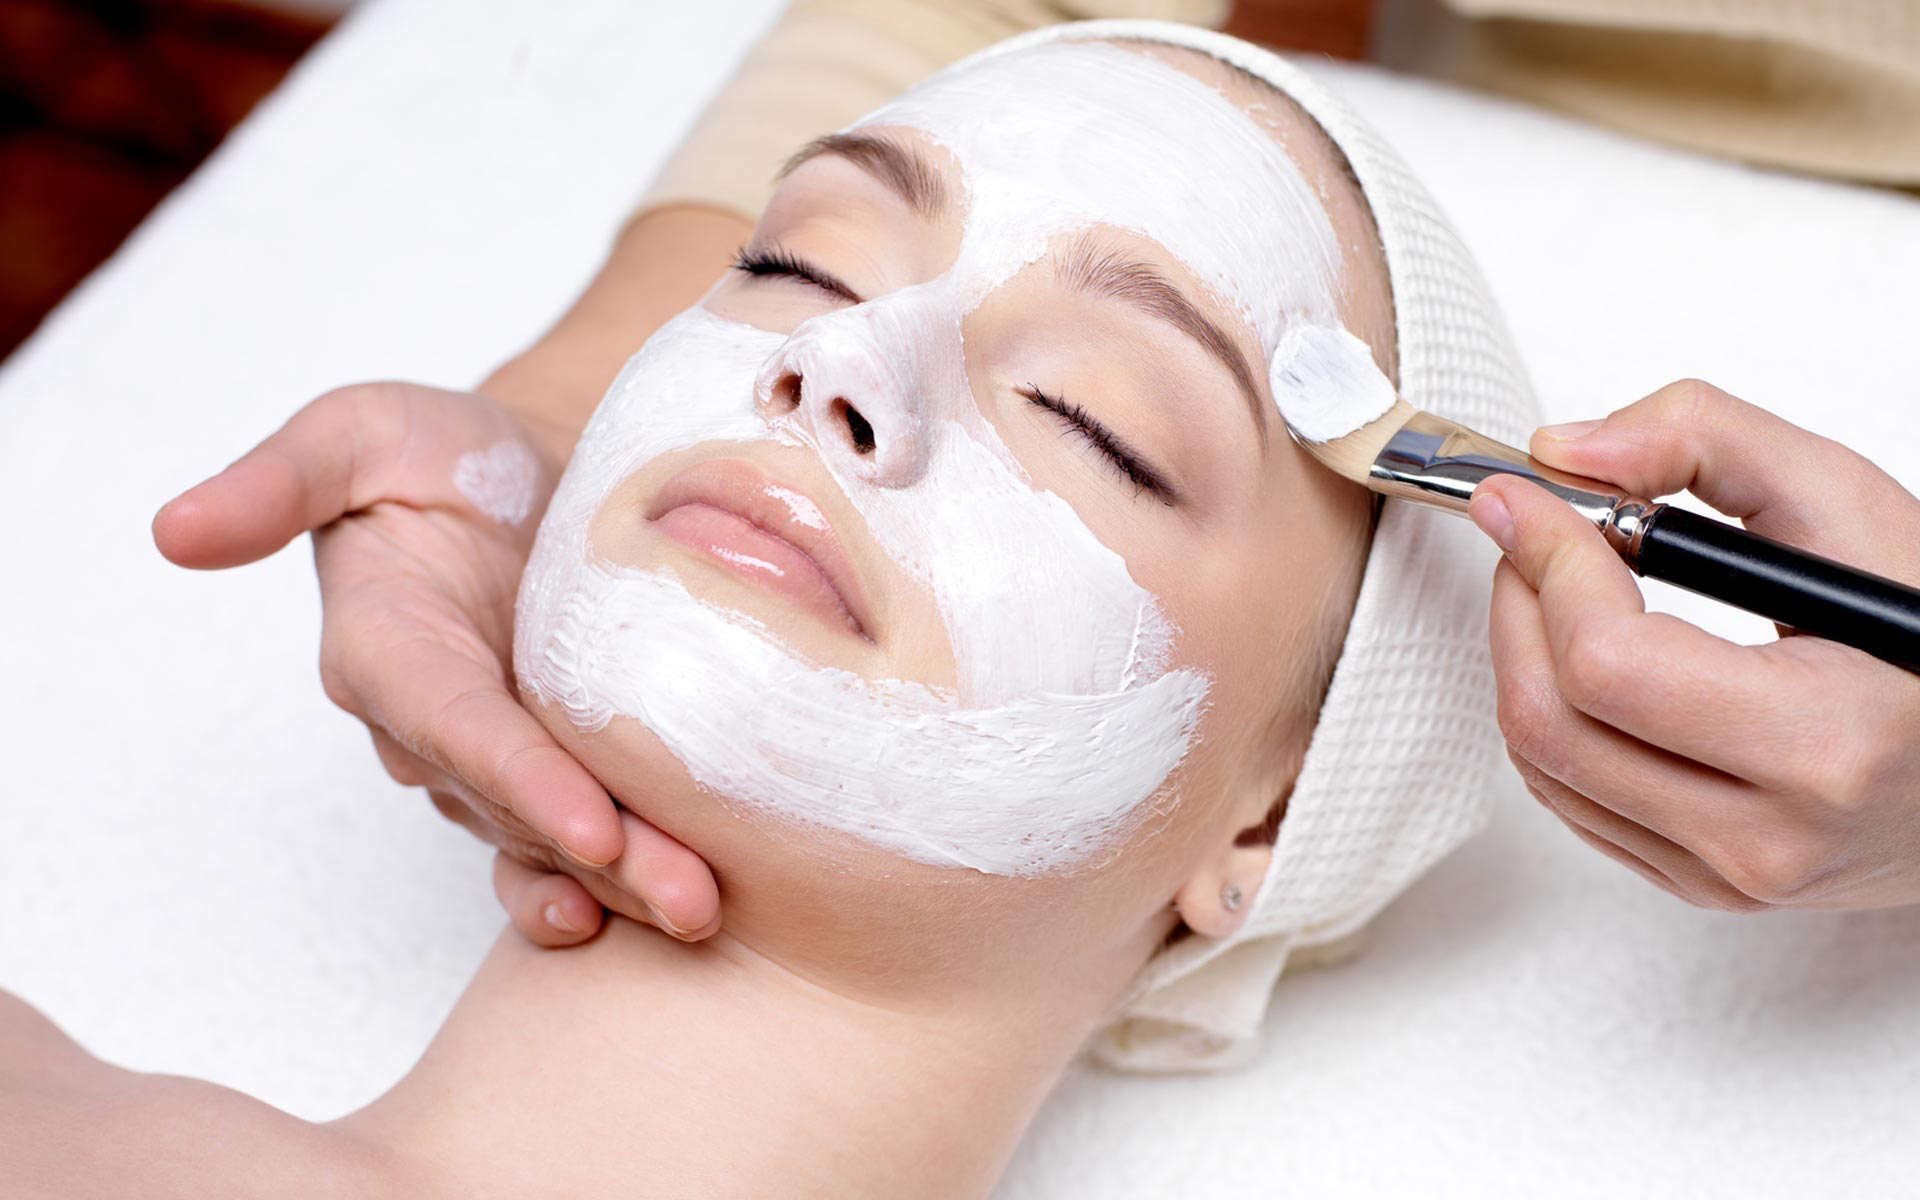 Pregnancy Facial - During pregnancy your hormones are constantly changing, which usually results in a change in skin type. Women who haven't had spots since their teenage years now find themselves with oily skin and blocked pores. Or the skin can become very dry and dull causing makeup to appear lacklustre. Having a personalised facial can not only relax tired eyes but help even out your hormonal skin. Eve Taylor products can be tailored to suit each individual's needs. Whilst the face mask is on pick your area to have a massage focus on and let your skin thank you later!30 mins = £22                    60 mins = £42